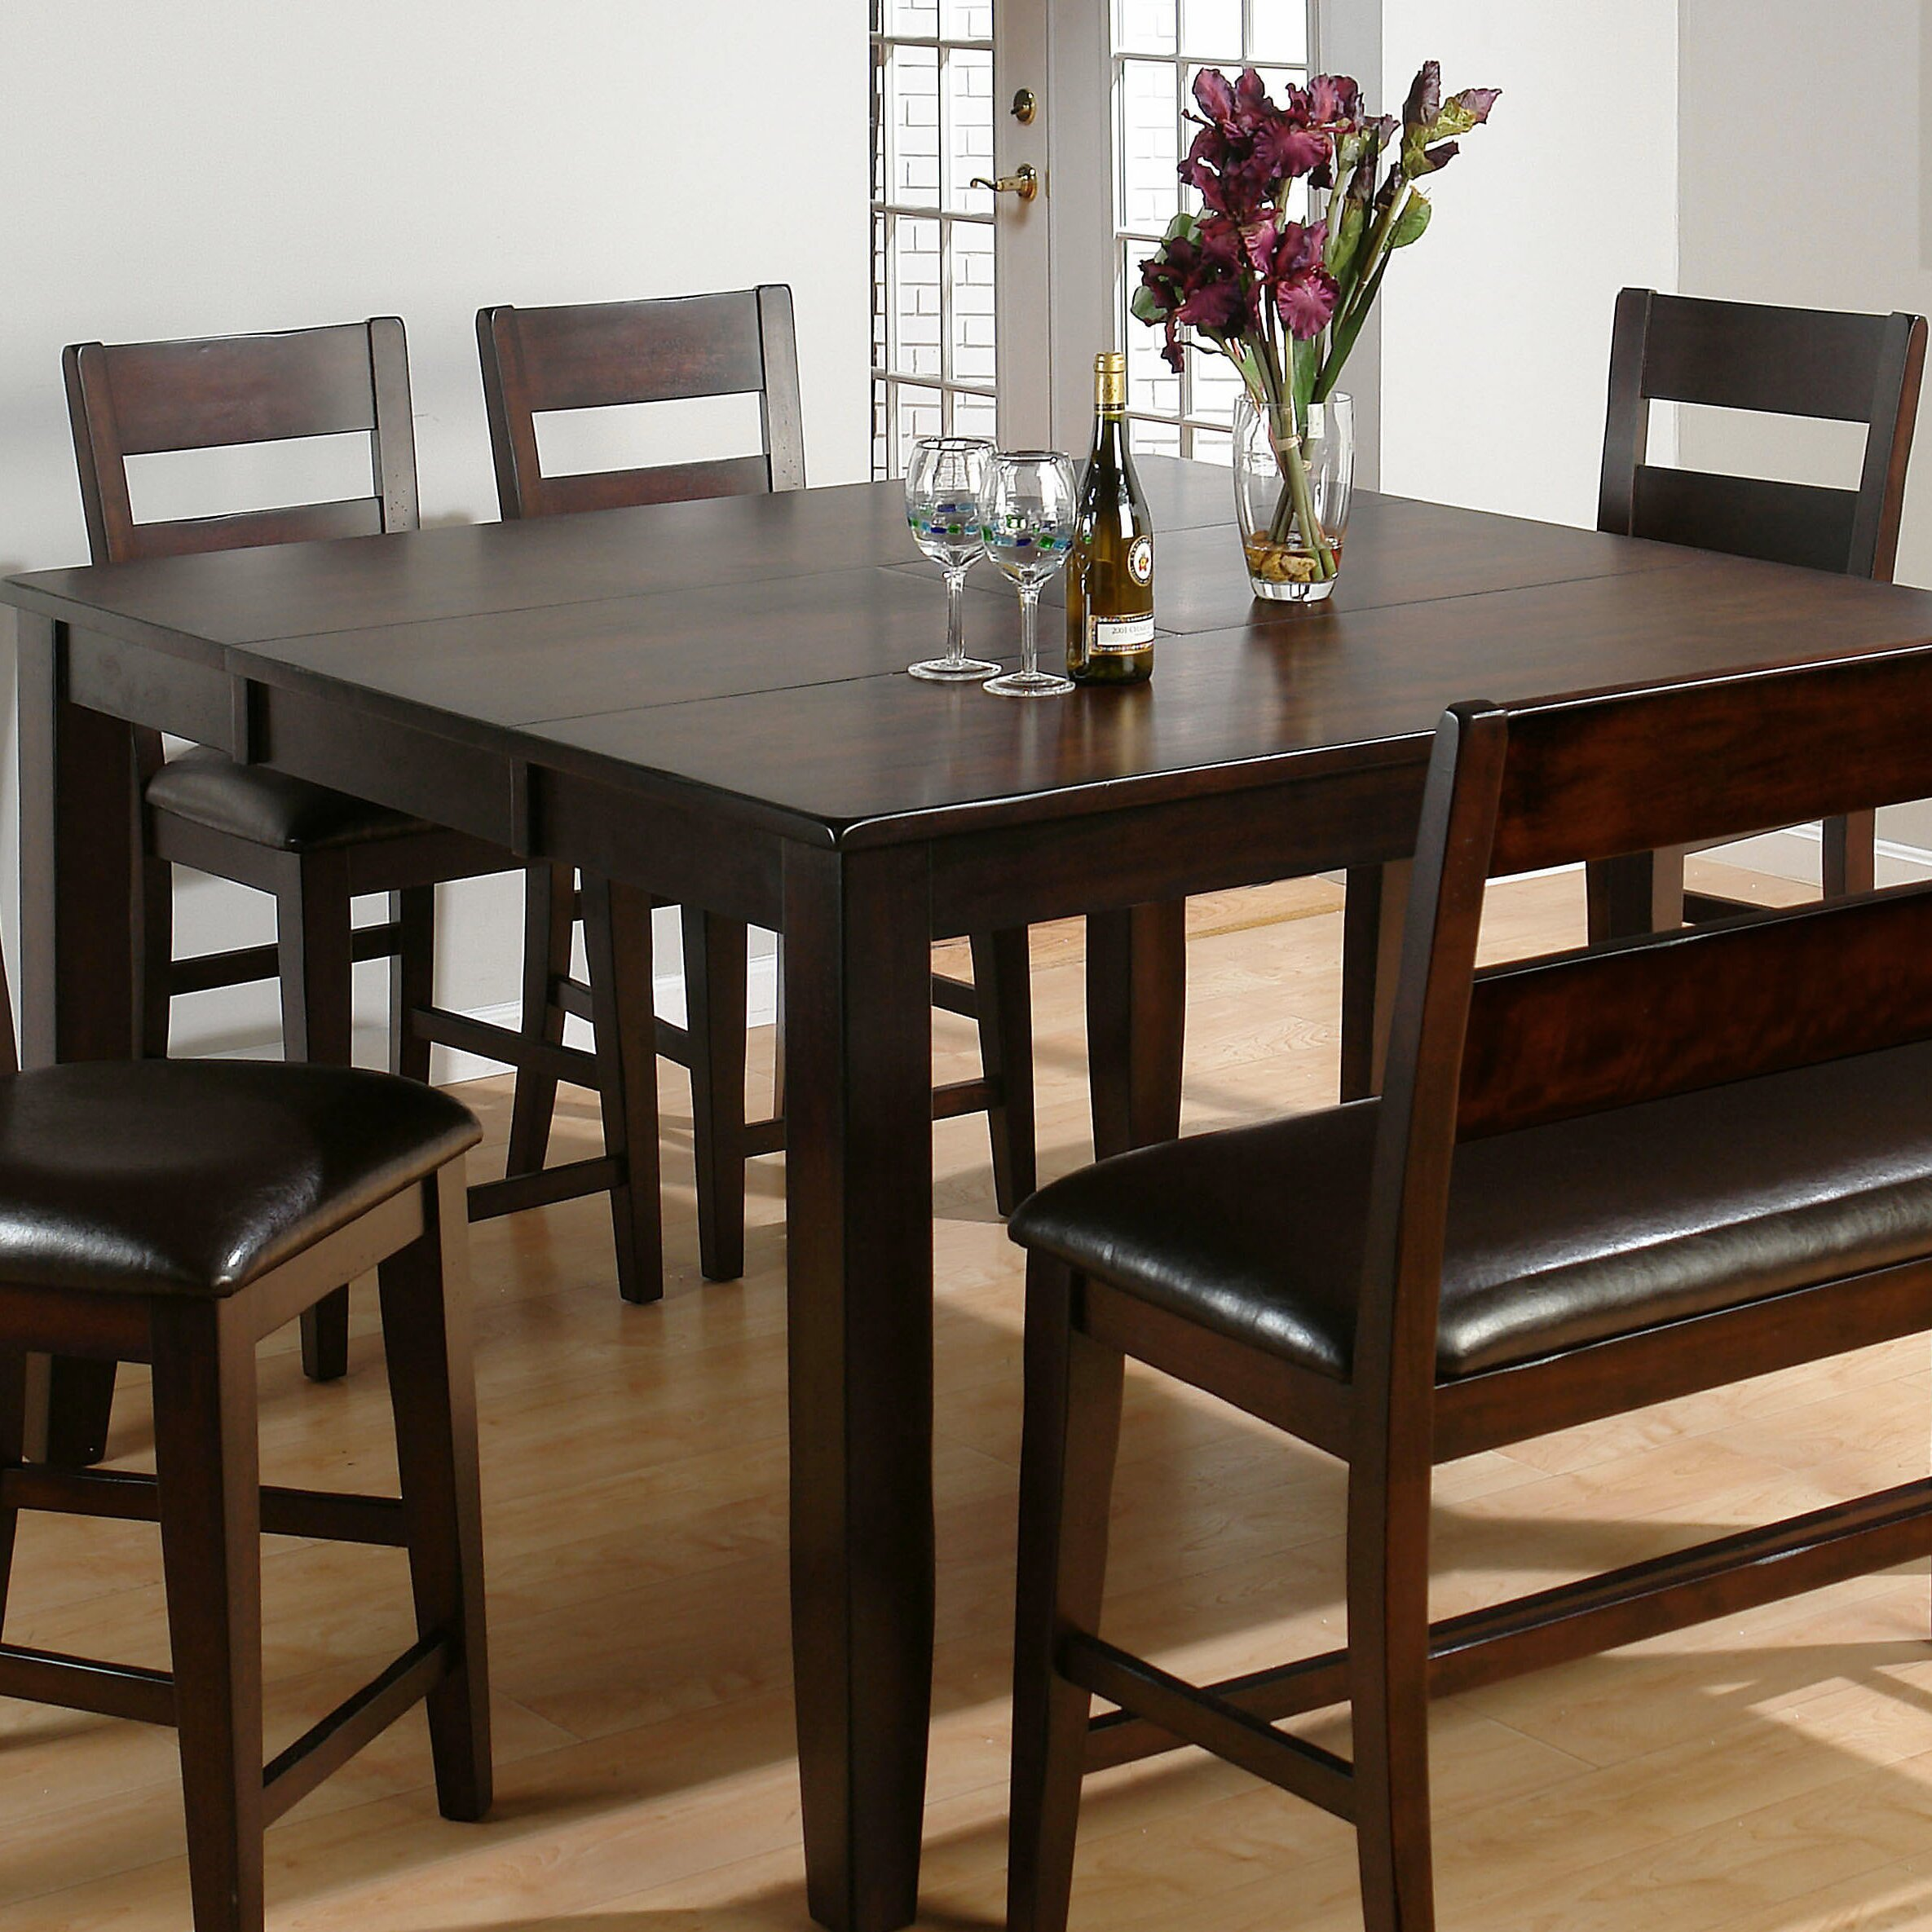 Darby Home Co Cutler Extendable Dining Table amp Reviews  : Darby Home Co25C225AE Cutler Extendable Dining Table from www.wayfair.ca size 2370 x 2370 jpeg 934kB